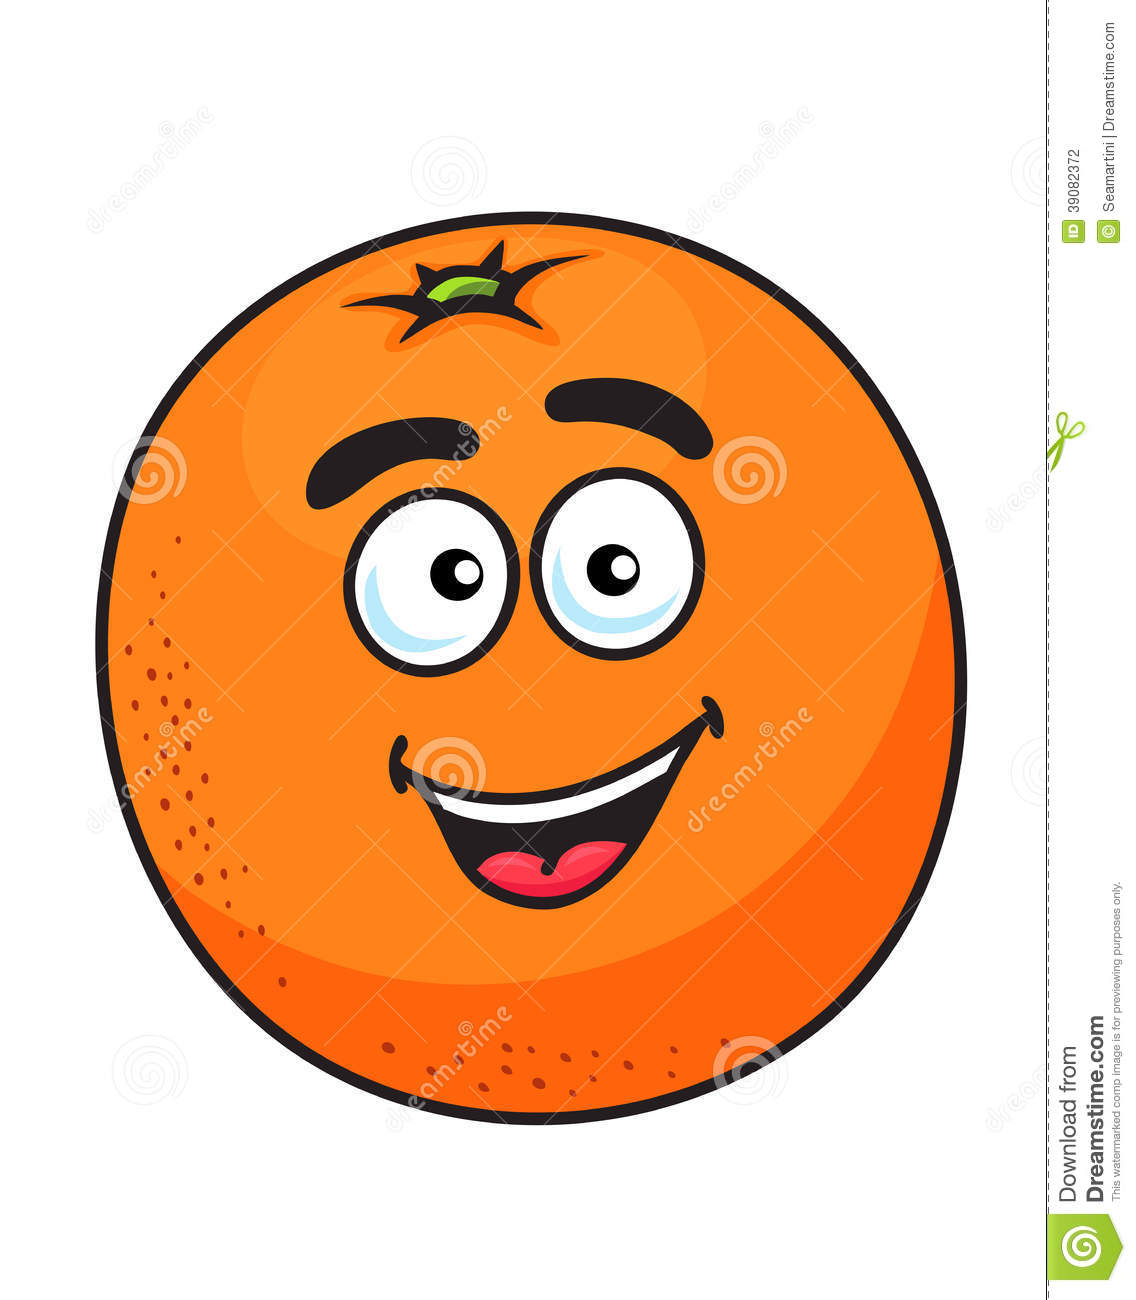 Ripe Cartoon Orange Fruit Stock Vector - Image: 39082372